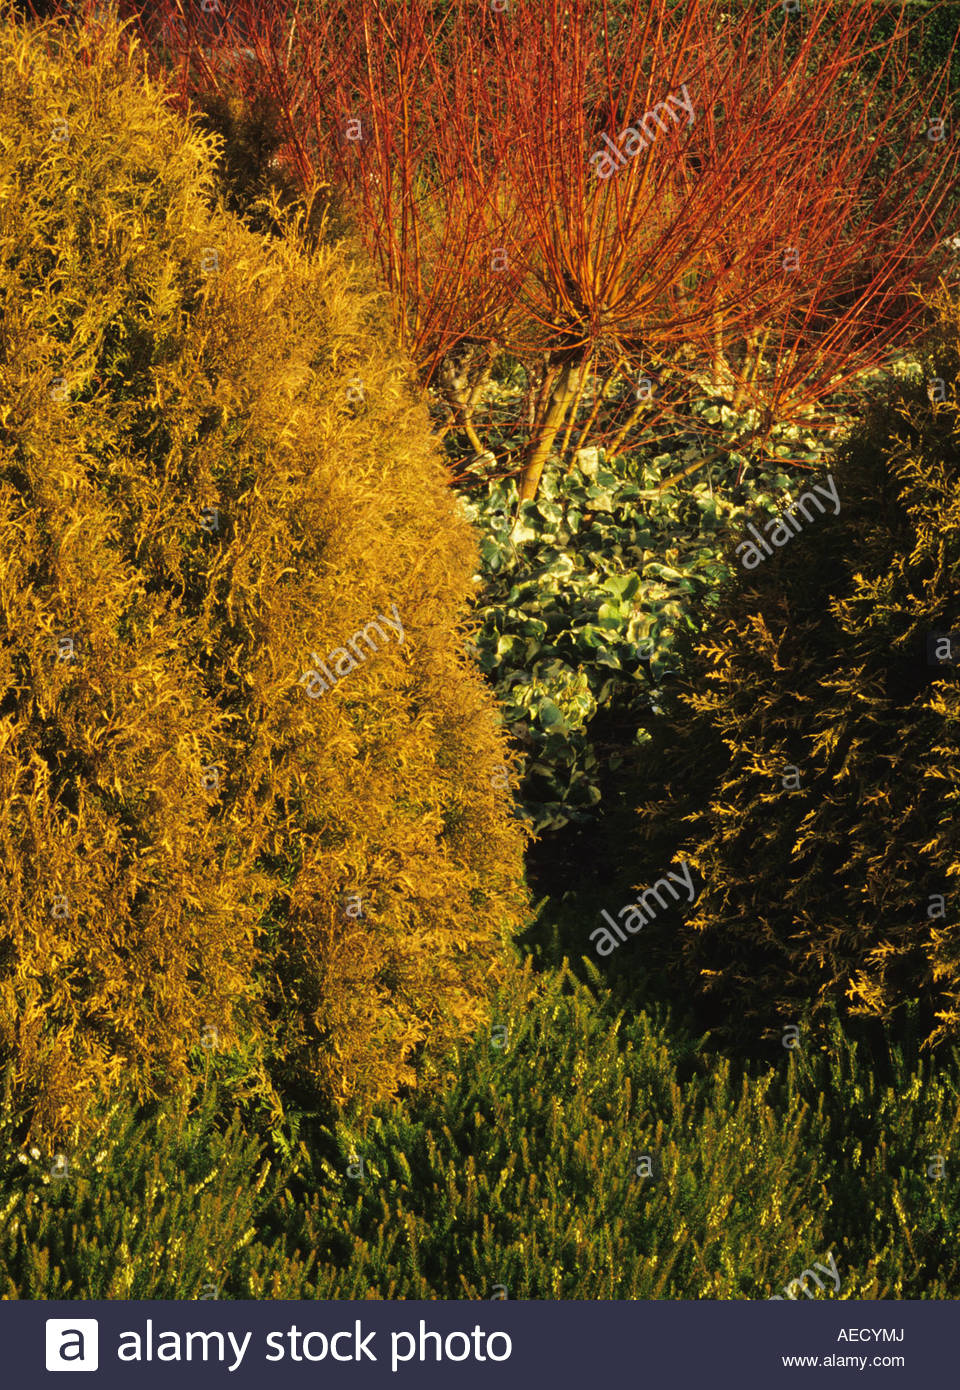 Unusual Cambridge Botanical Garden The Winter Garden Thuja Occidentalis  With Exquisite Cambridge Botanical Garden The Winter Garden Thuja Occidentalis  Ellwqangeriana Aurea Erica X Darleensis George Randall With Delightful Hampstead Hill Gardens Also In The Night Garden Torrent In Addition La Tasca London Covent Garden And Chard Garden Centre As Well As Oriental Garden Design Additionally Low Maintenance Front Garden Ideas From Alamycom With   Exquisite Cambridge Botanical Garden The Winter Garden Thuja Occidentalis  With Delightful Cambridge Botanical Garden The Winter Garden Thuja Occidentalis  Ellwqangeriana Aurea Erica X Darleensis George Randall And Unusual Hampstead Hill Gardens Also In The Night Garden Torrent In Addition La Tasca London Covent Garden From Alamycom